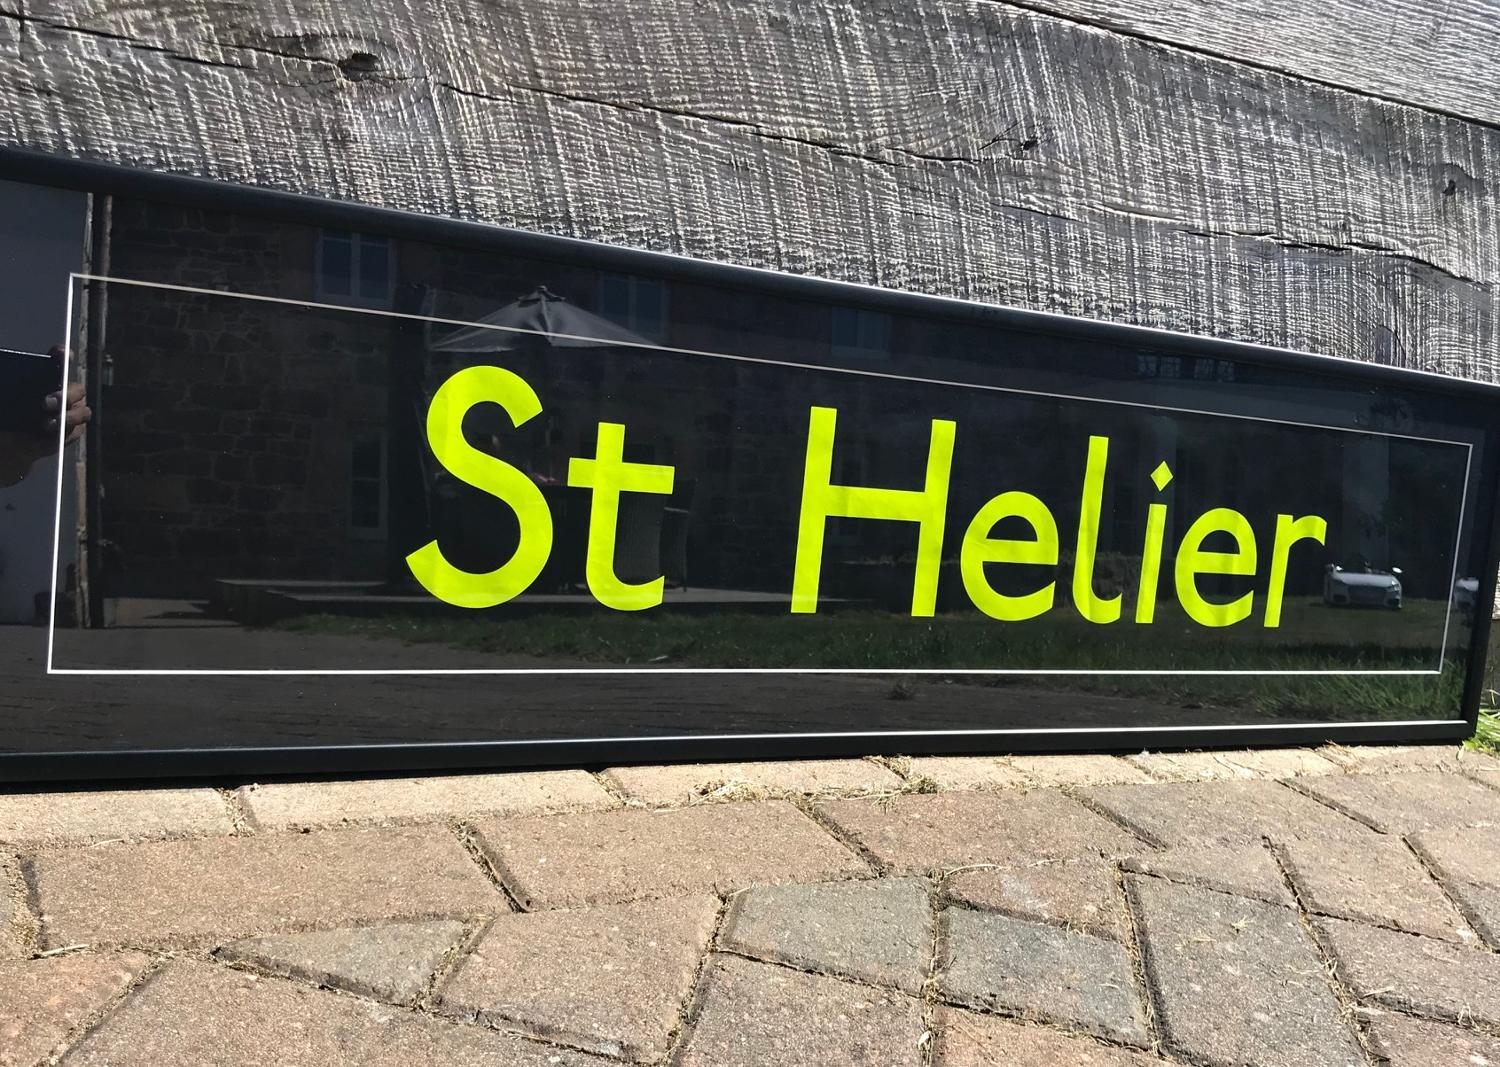 St Helier bus sign